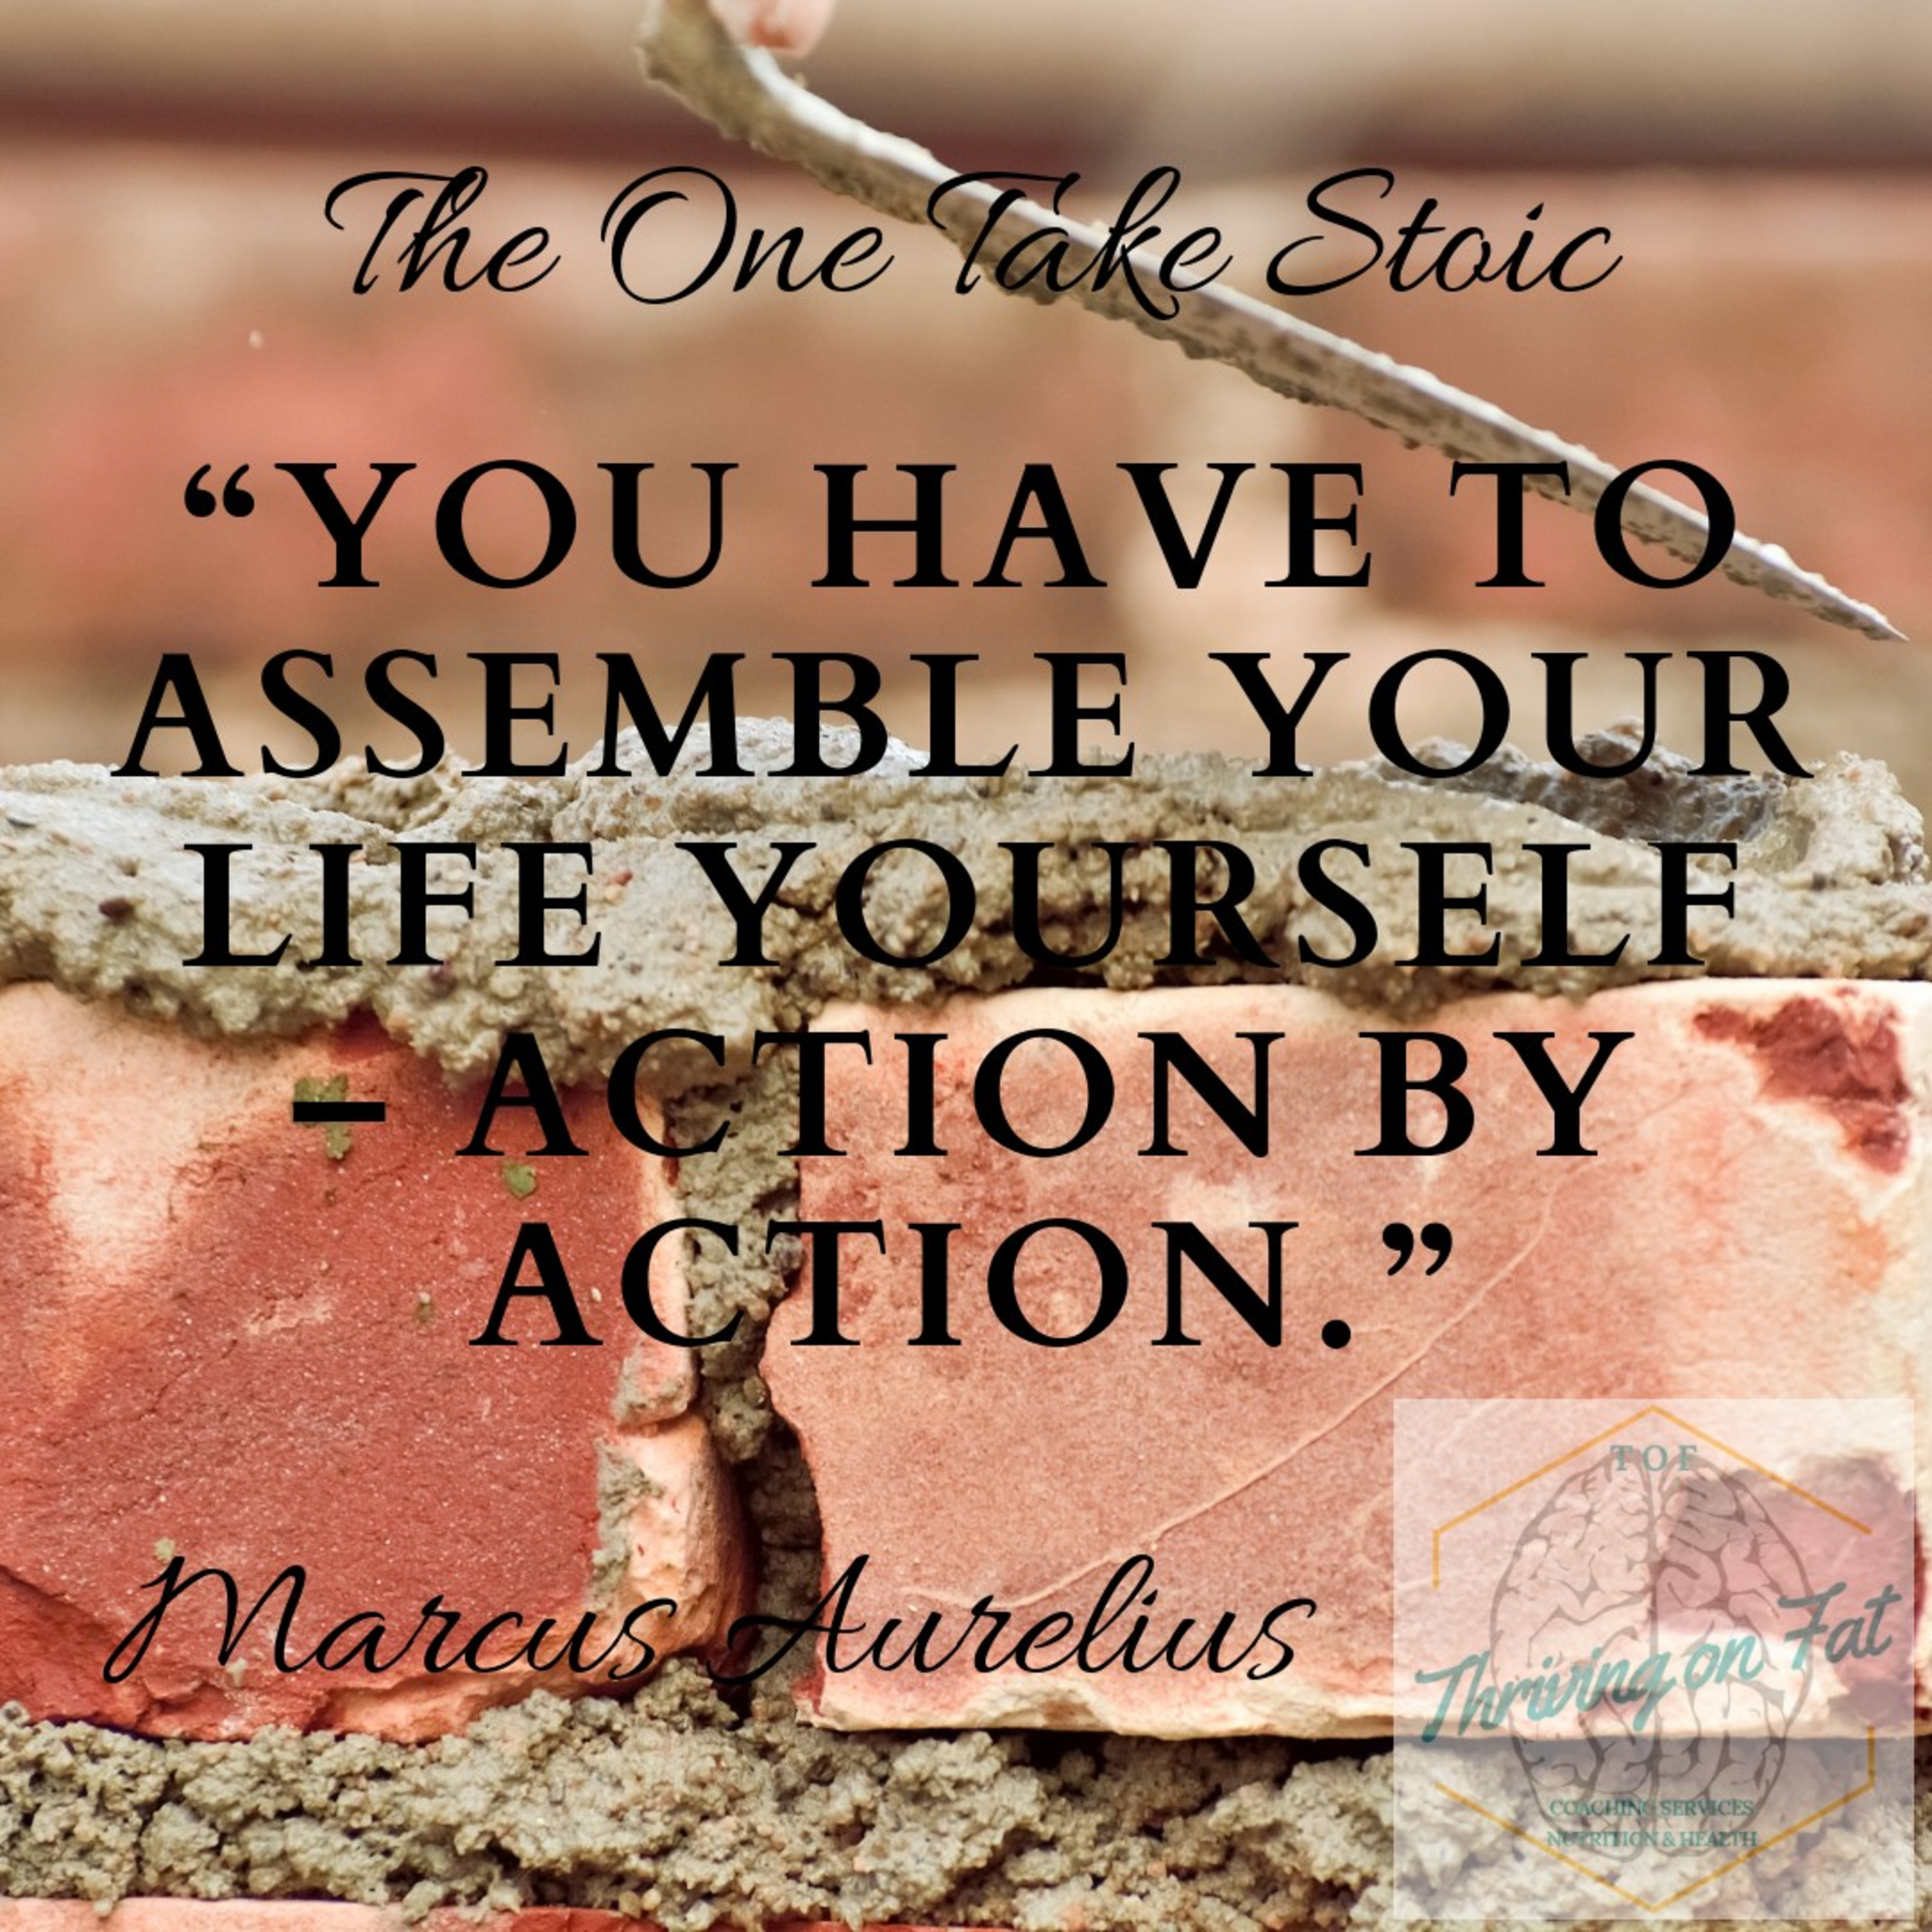 167: Assembling your life